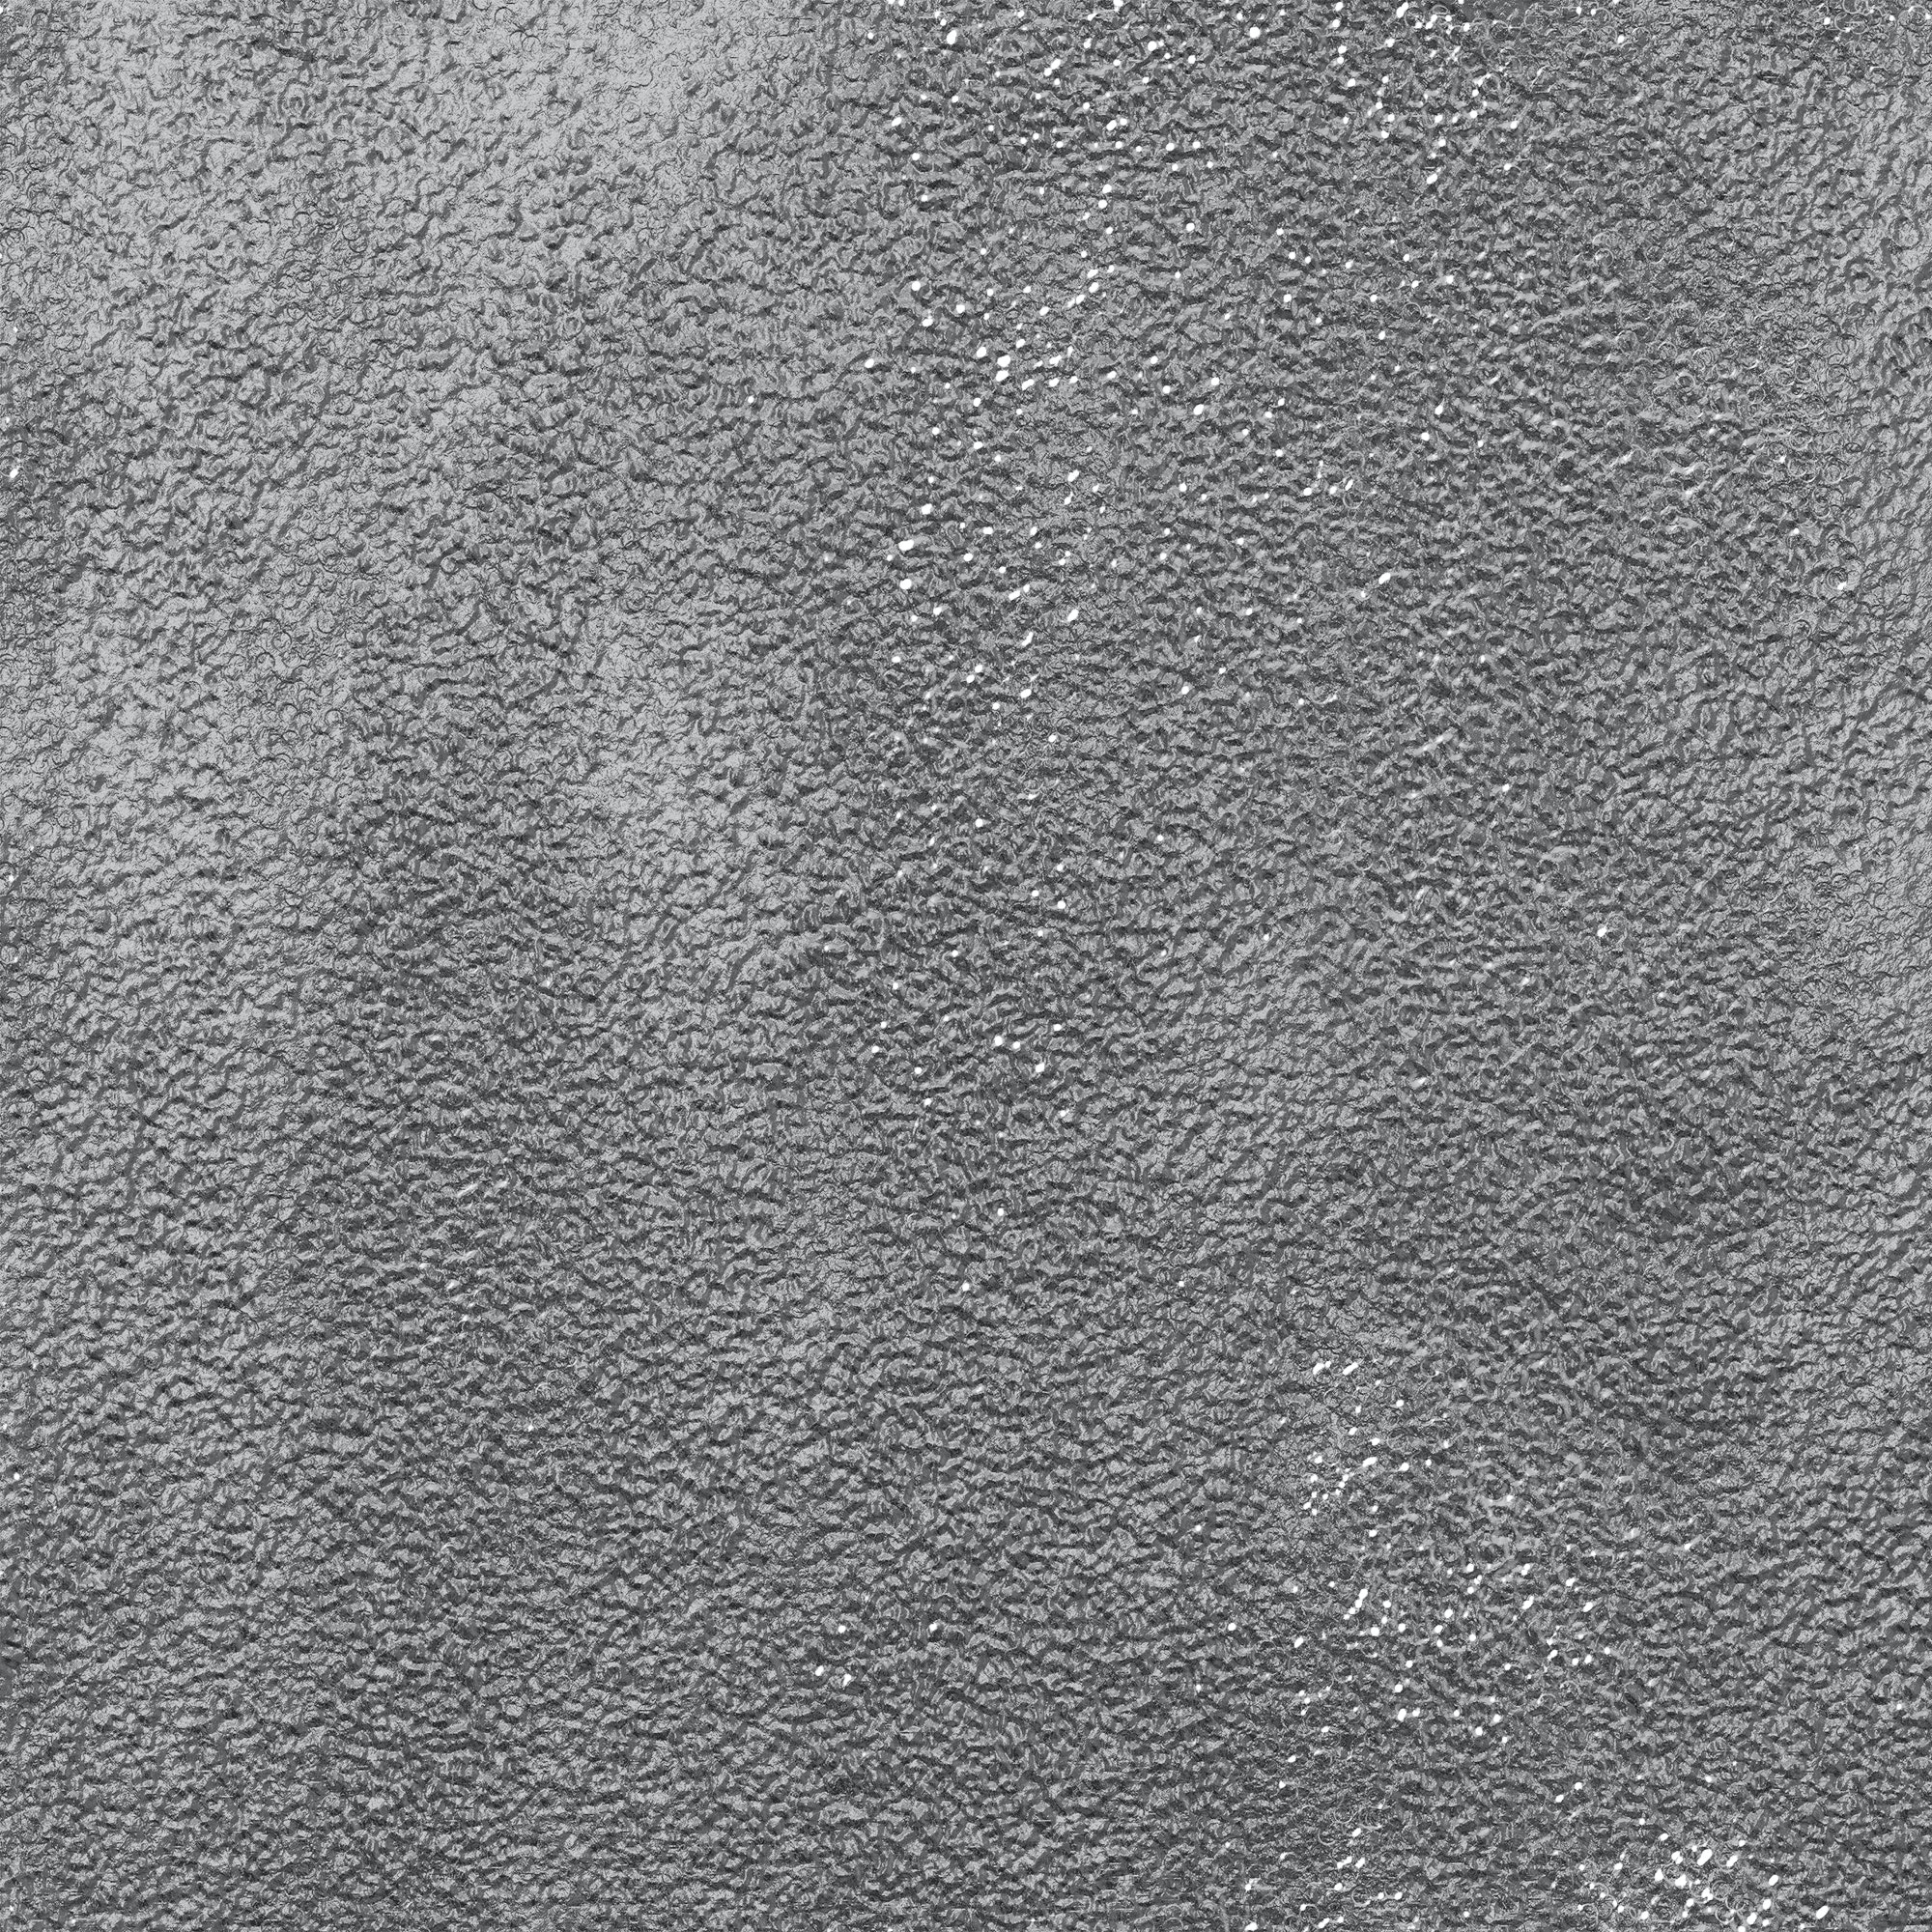 Beibehang Large Custom Wall Paper Cool Metal Texture: Grey Wooden Surface · Free Stock Photo